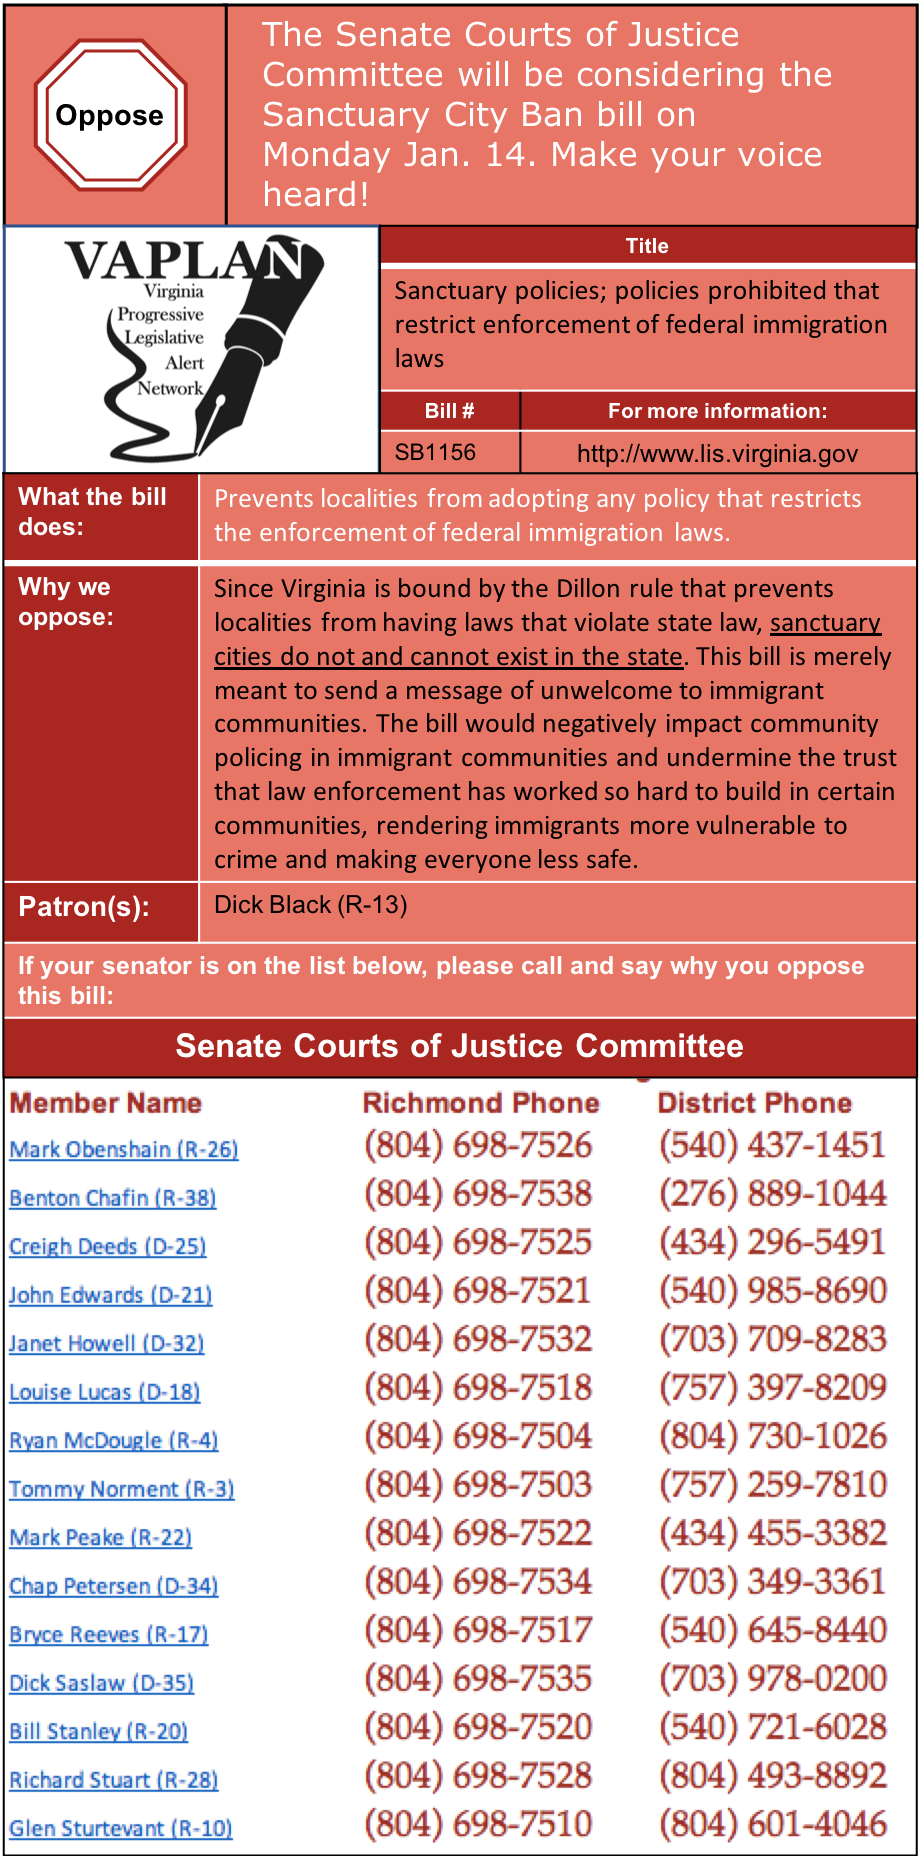 ALERT: Oppose Sanctuary City Ban in Senate Courts of Justice!